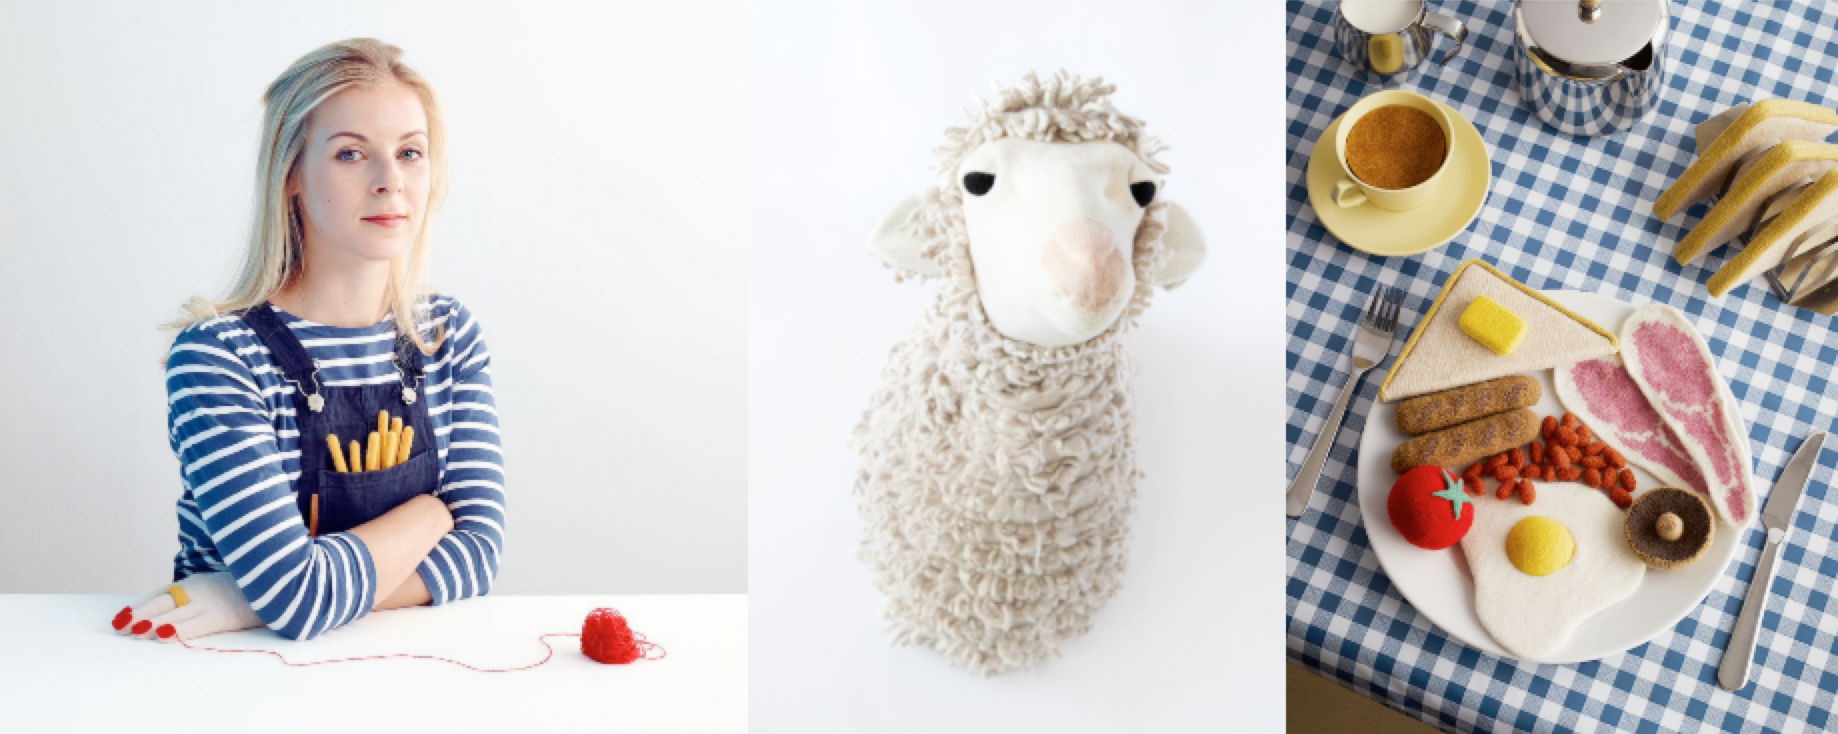 decorate office jessica. Knitted Props | Jessica Dance Decorate Office E